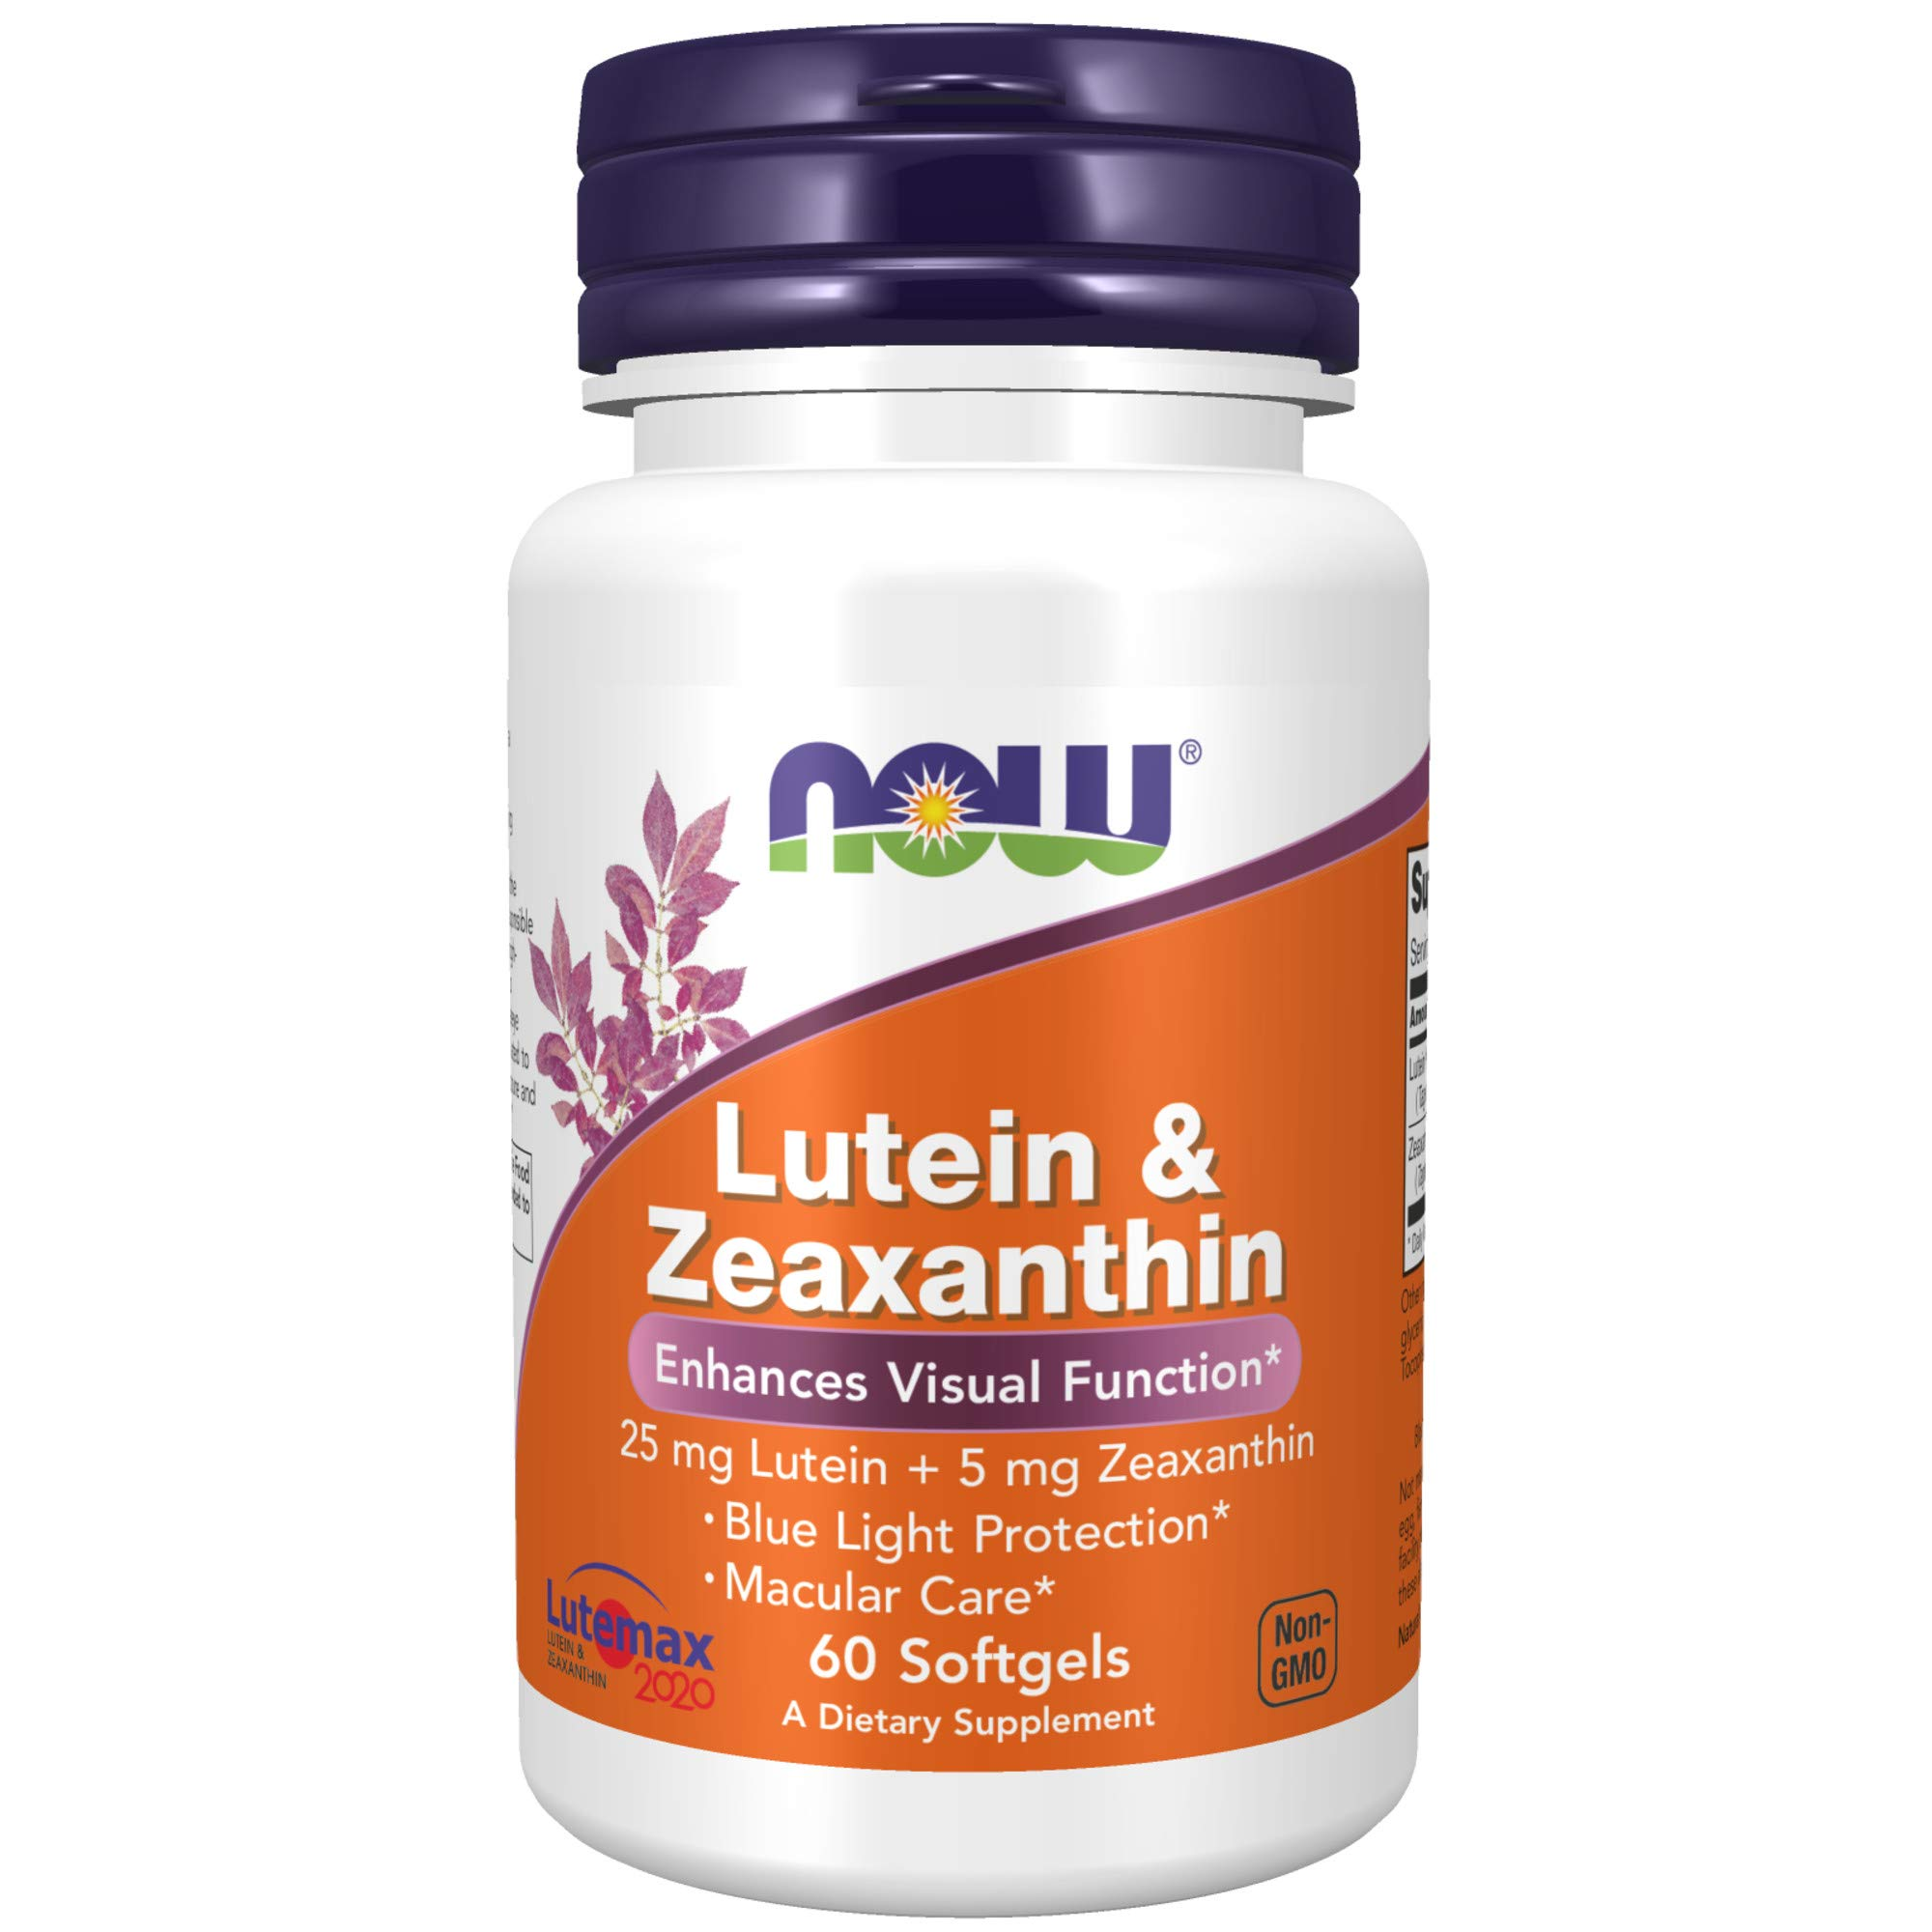 NOW Supplements Lutein & Zeaxanthin with 25 mg Lutein and 5 mg Zeaxanthin, 60 Softgels